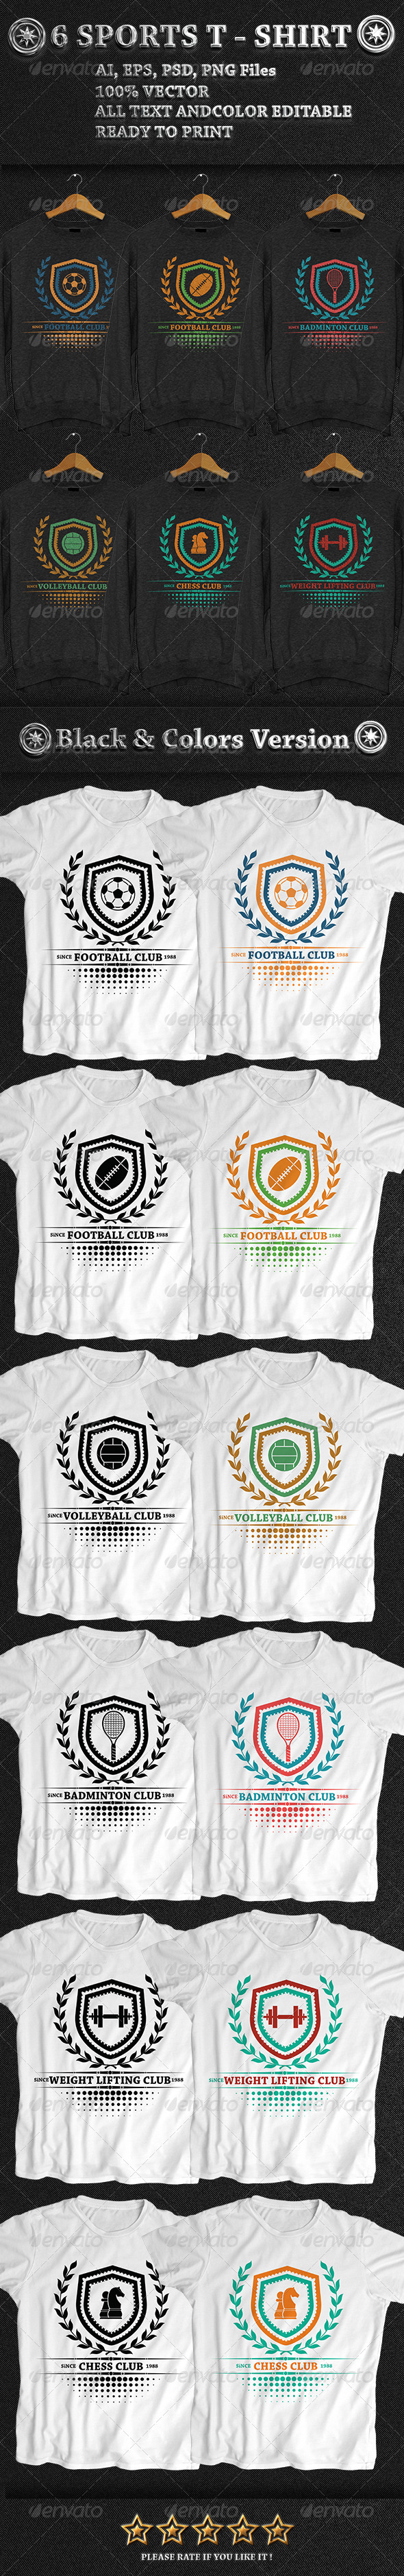 GraphicRiver 6 Sports T-Shirt 7571631